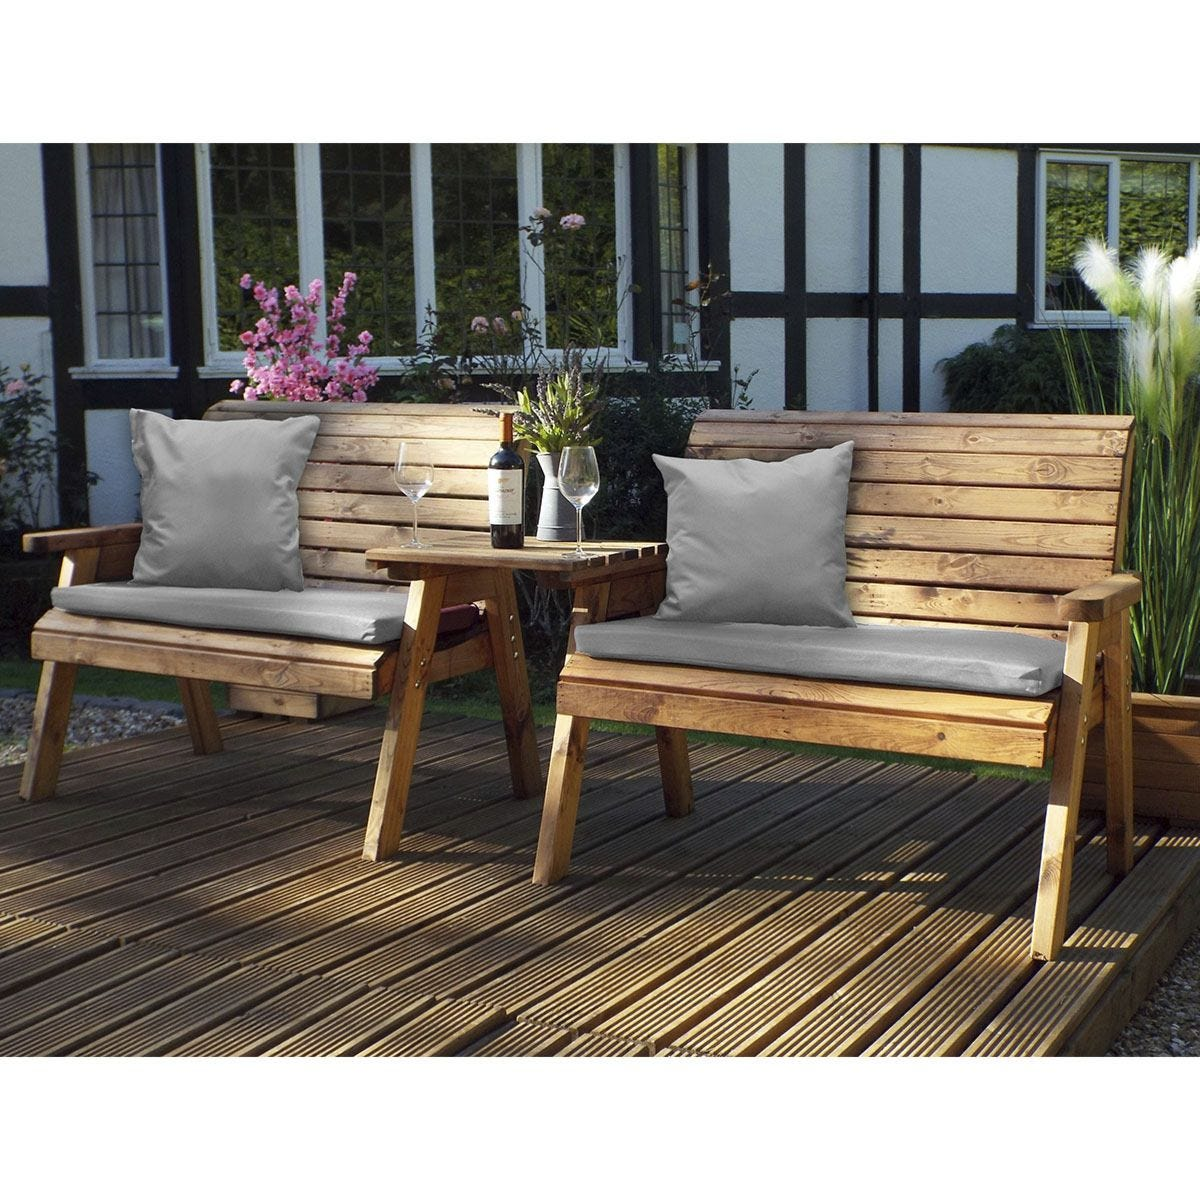 Charles Taylor Twin Bench Set Straight with Grey Cushions